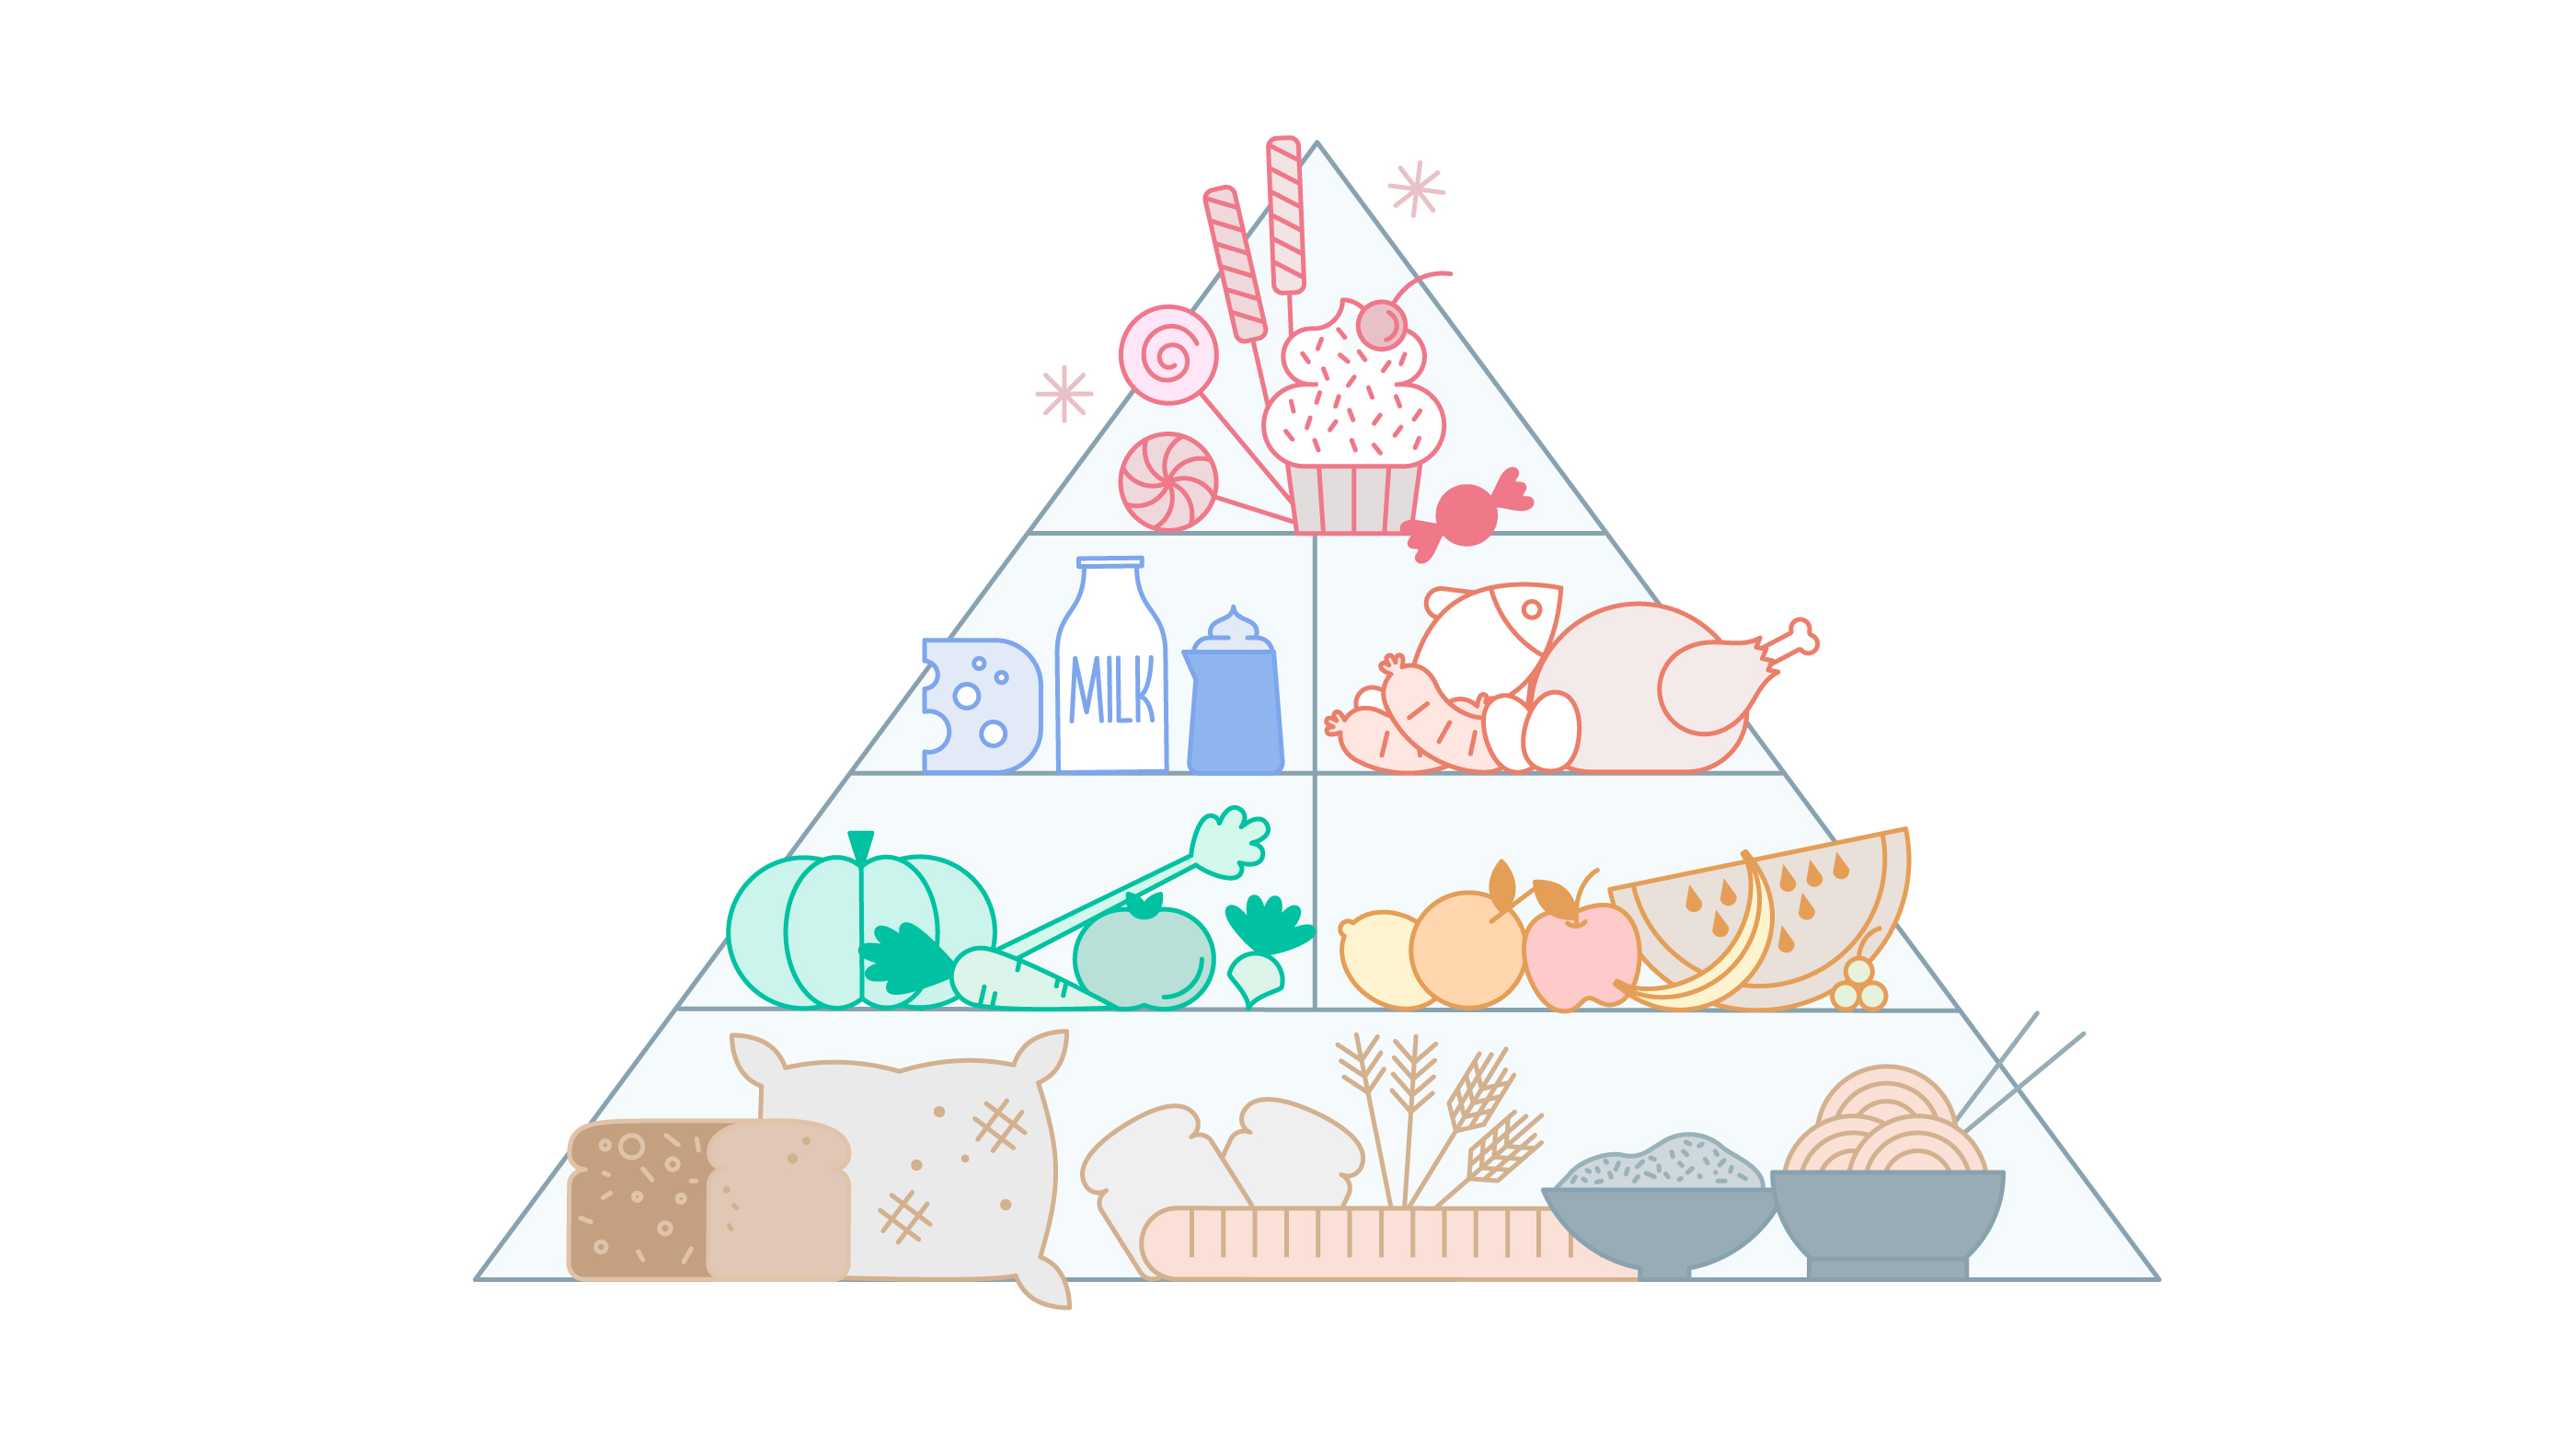 Free Food Pyramid Vector Download Free Vector Art Stock